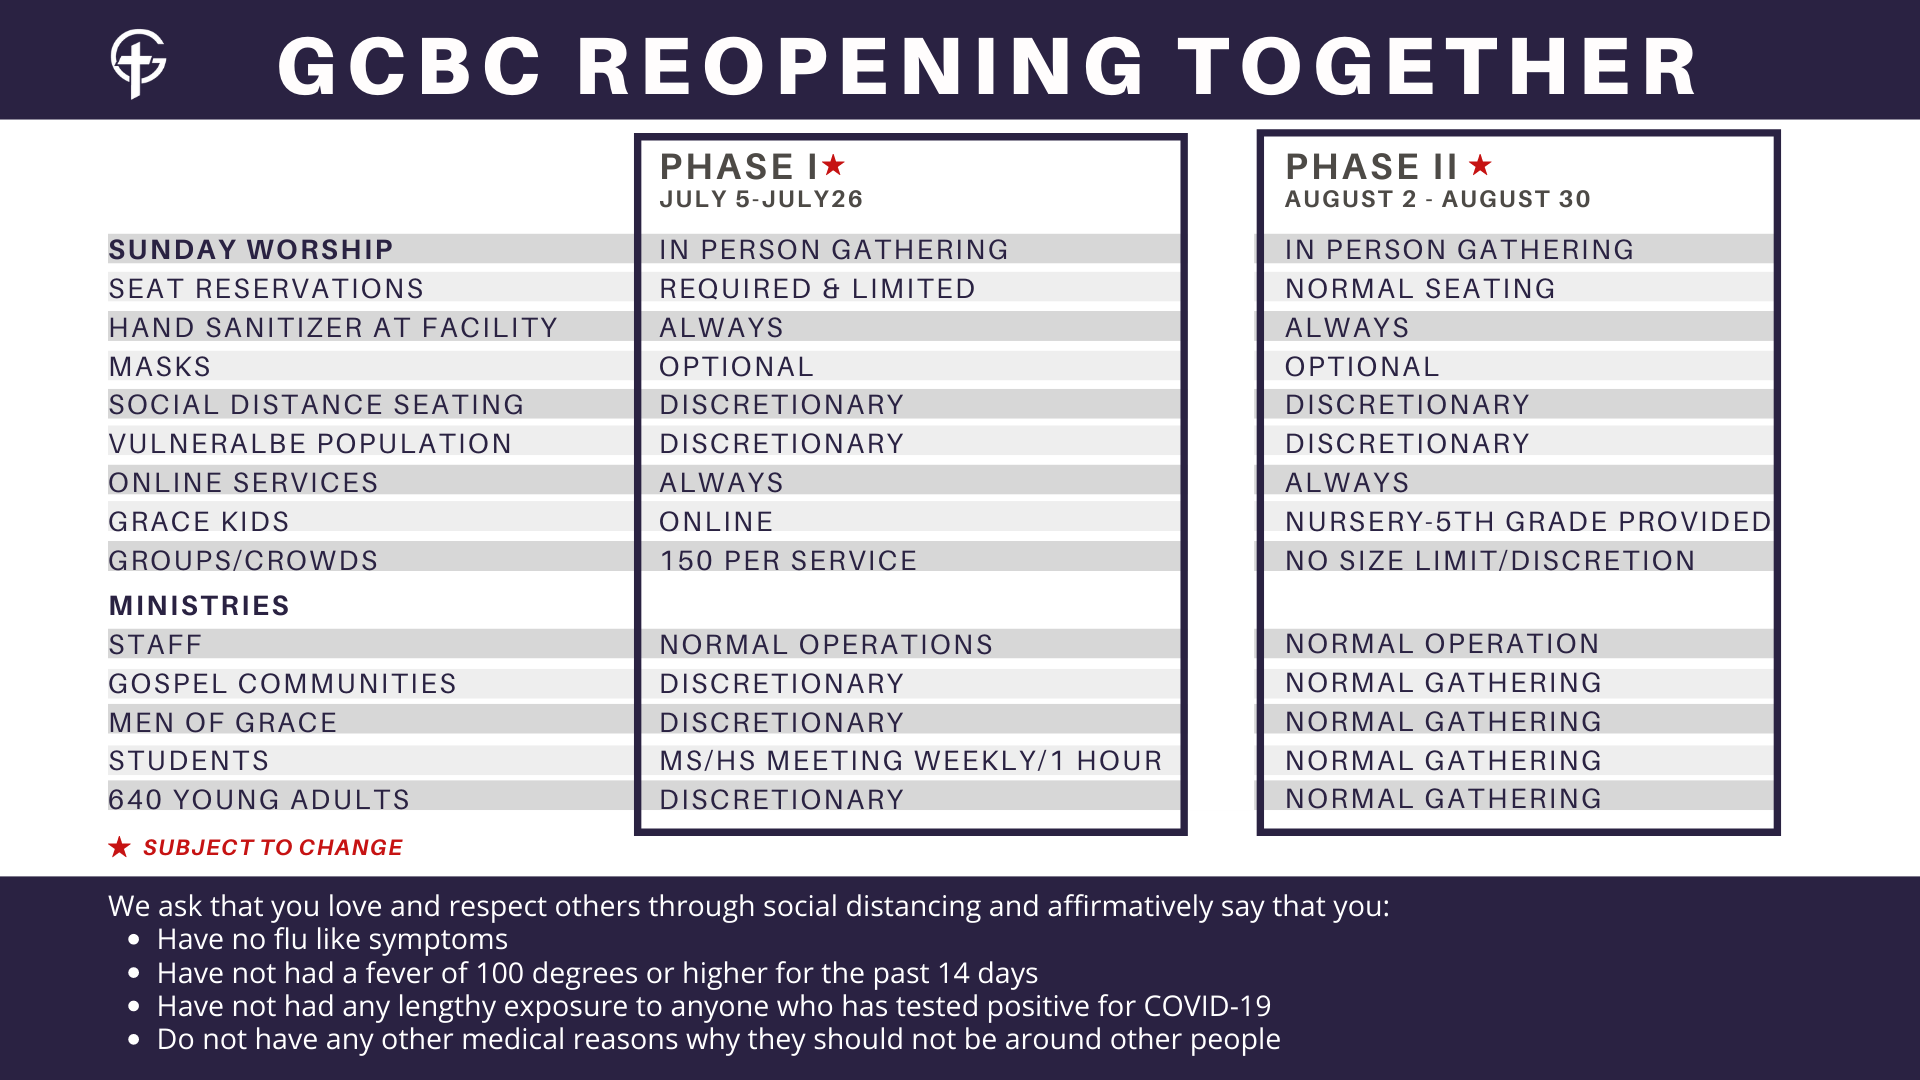 GCBC REOPENING TOGETHER